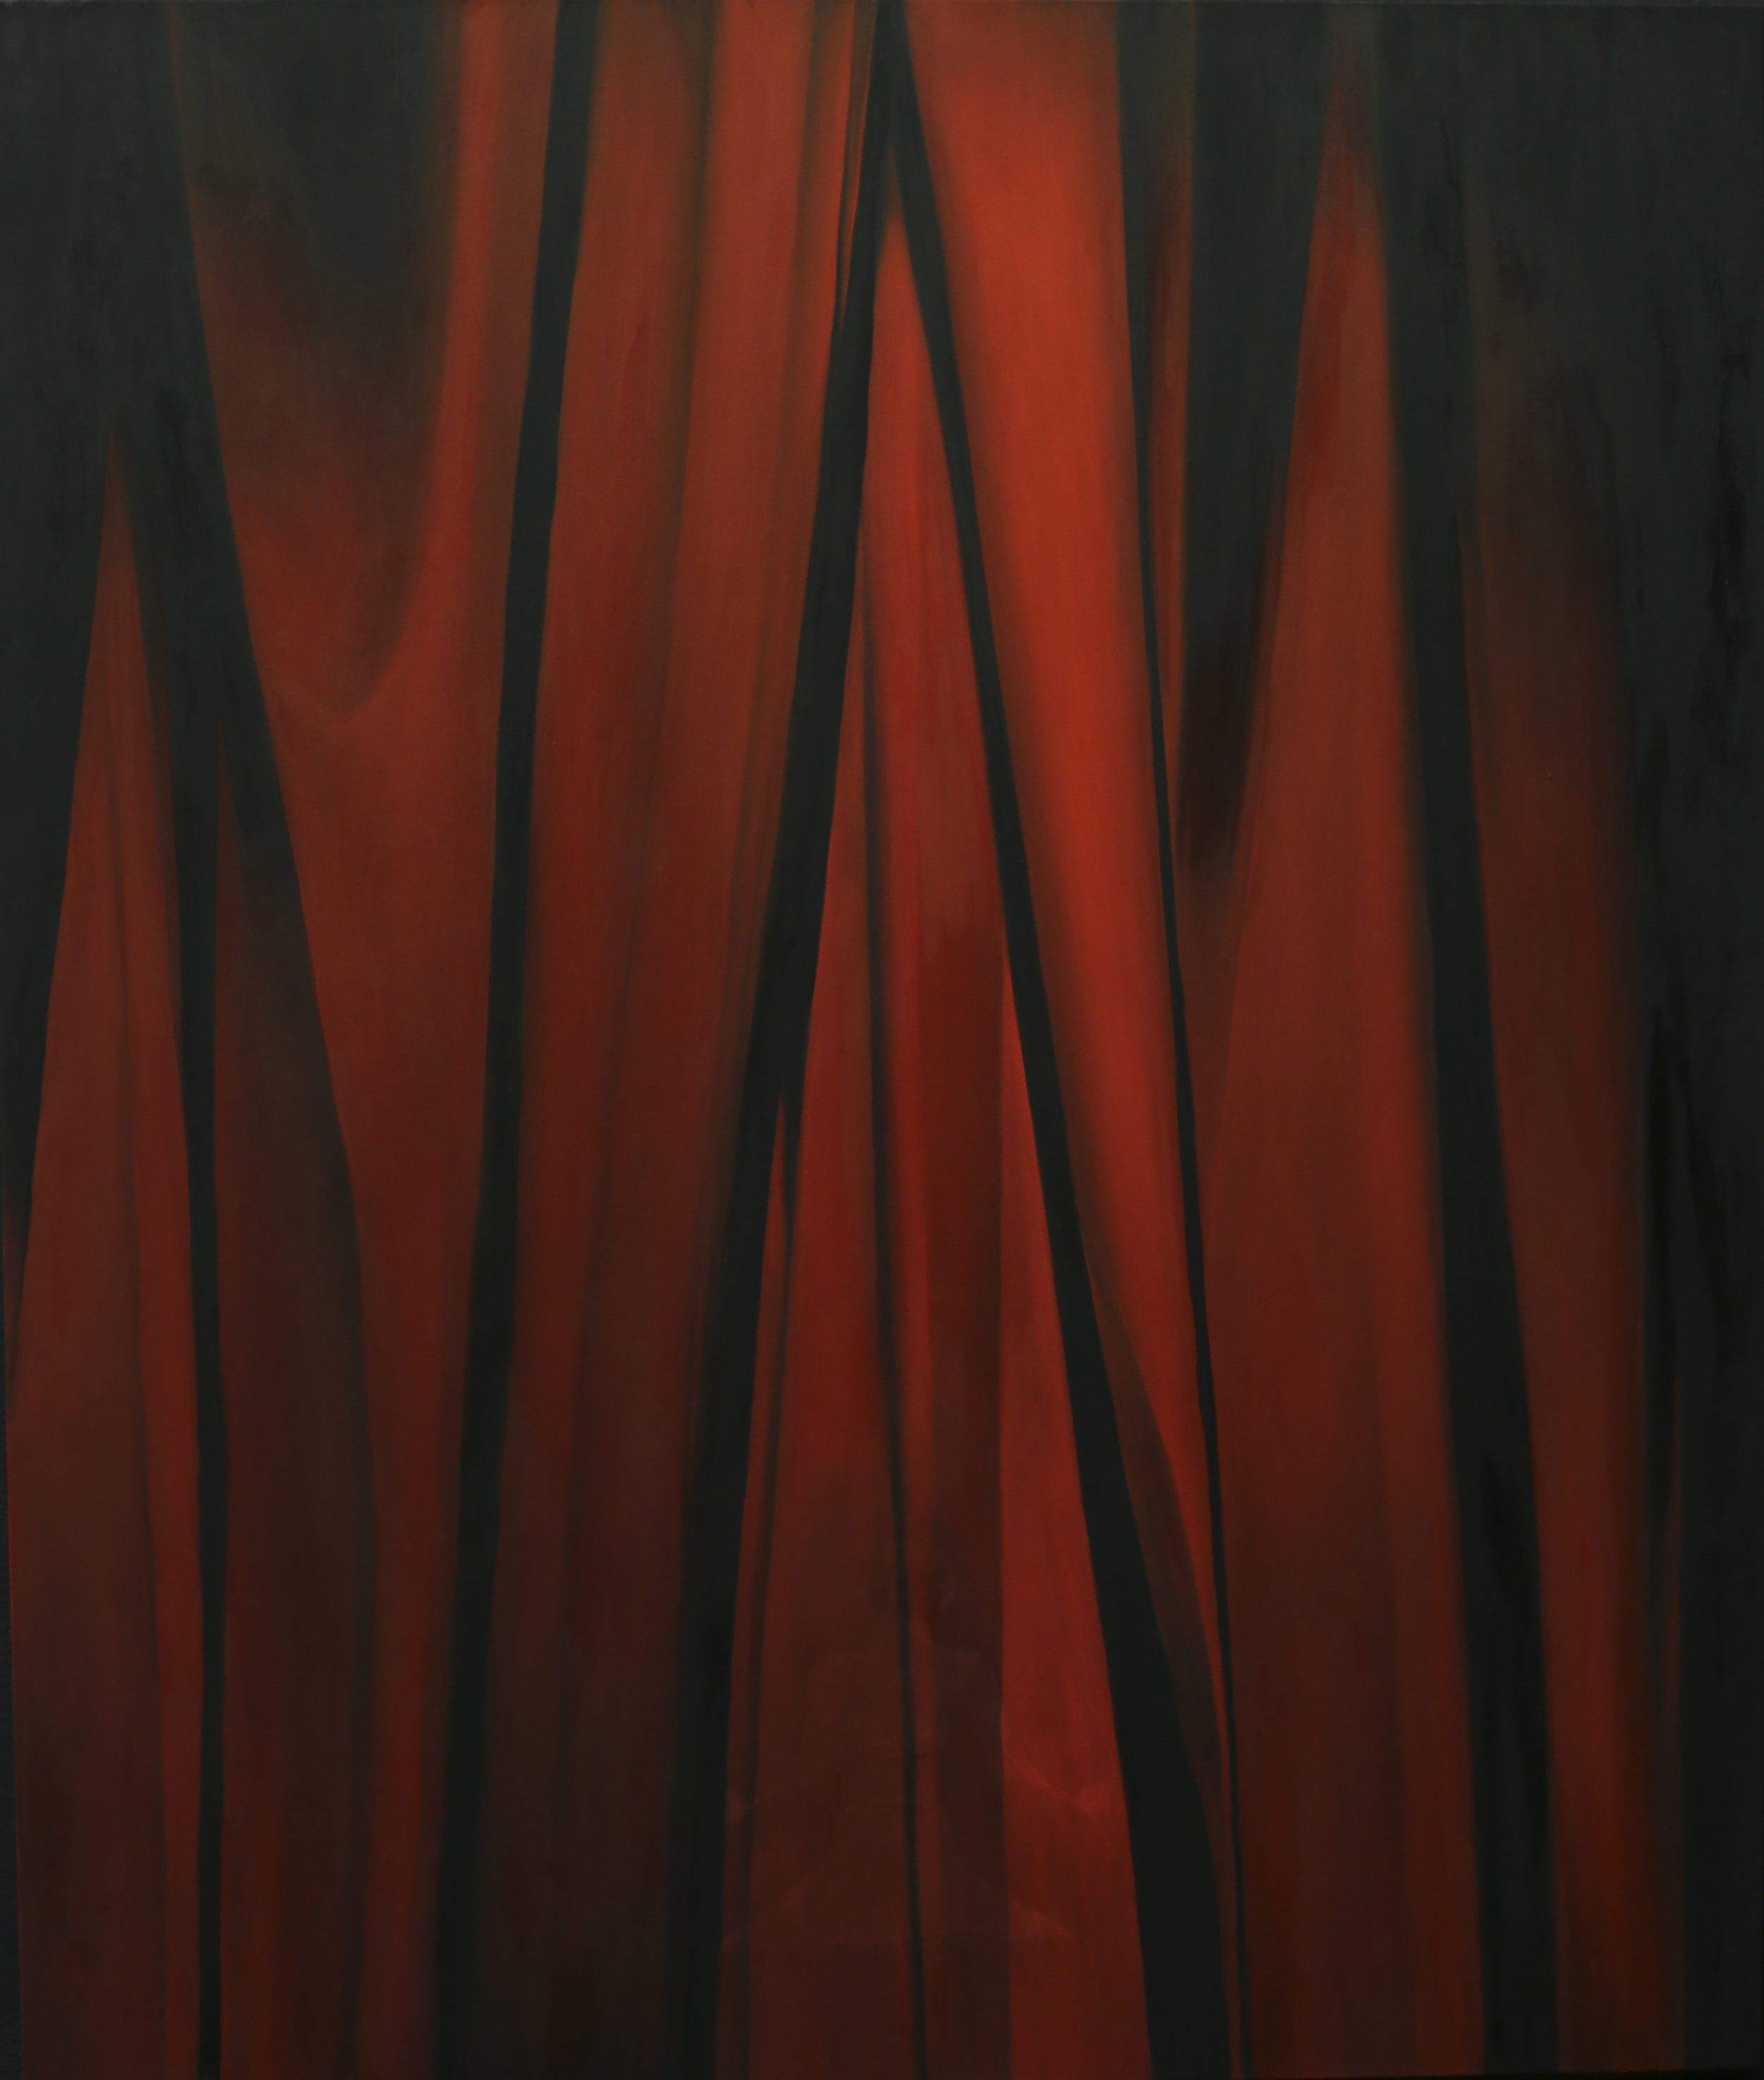 Alina Pecherskaya, Iron Curtain Nowadays, oil on canvas, 190 cm x 160 cm,  https://www.instagram.com/pecherskaya_art/